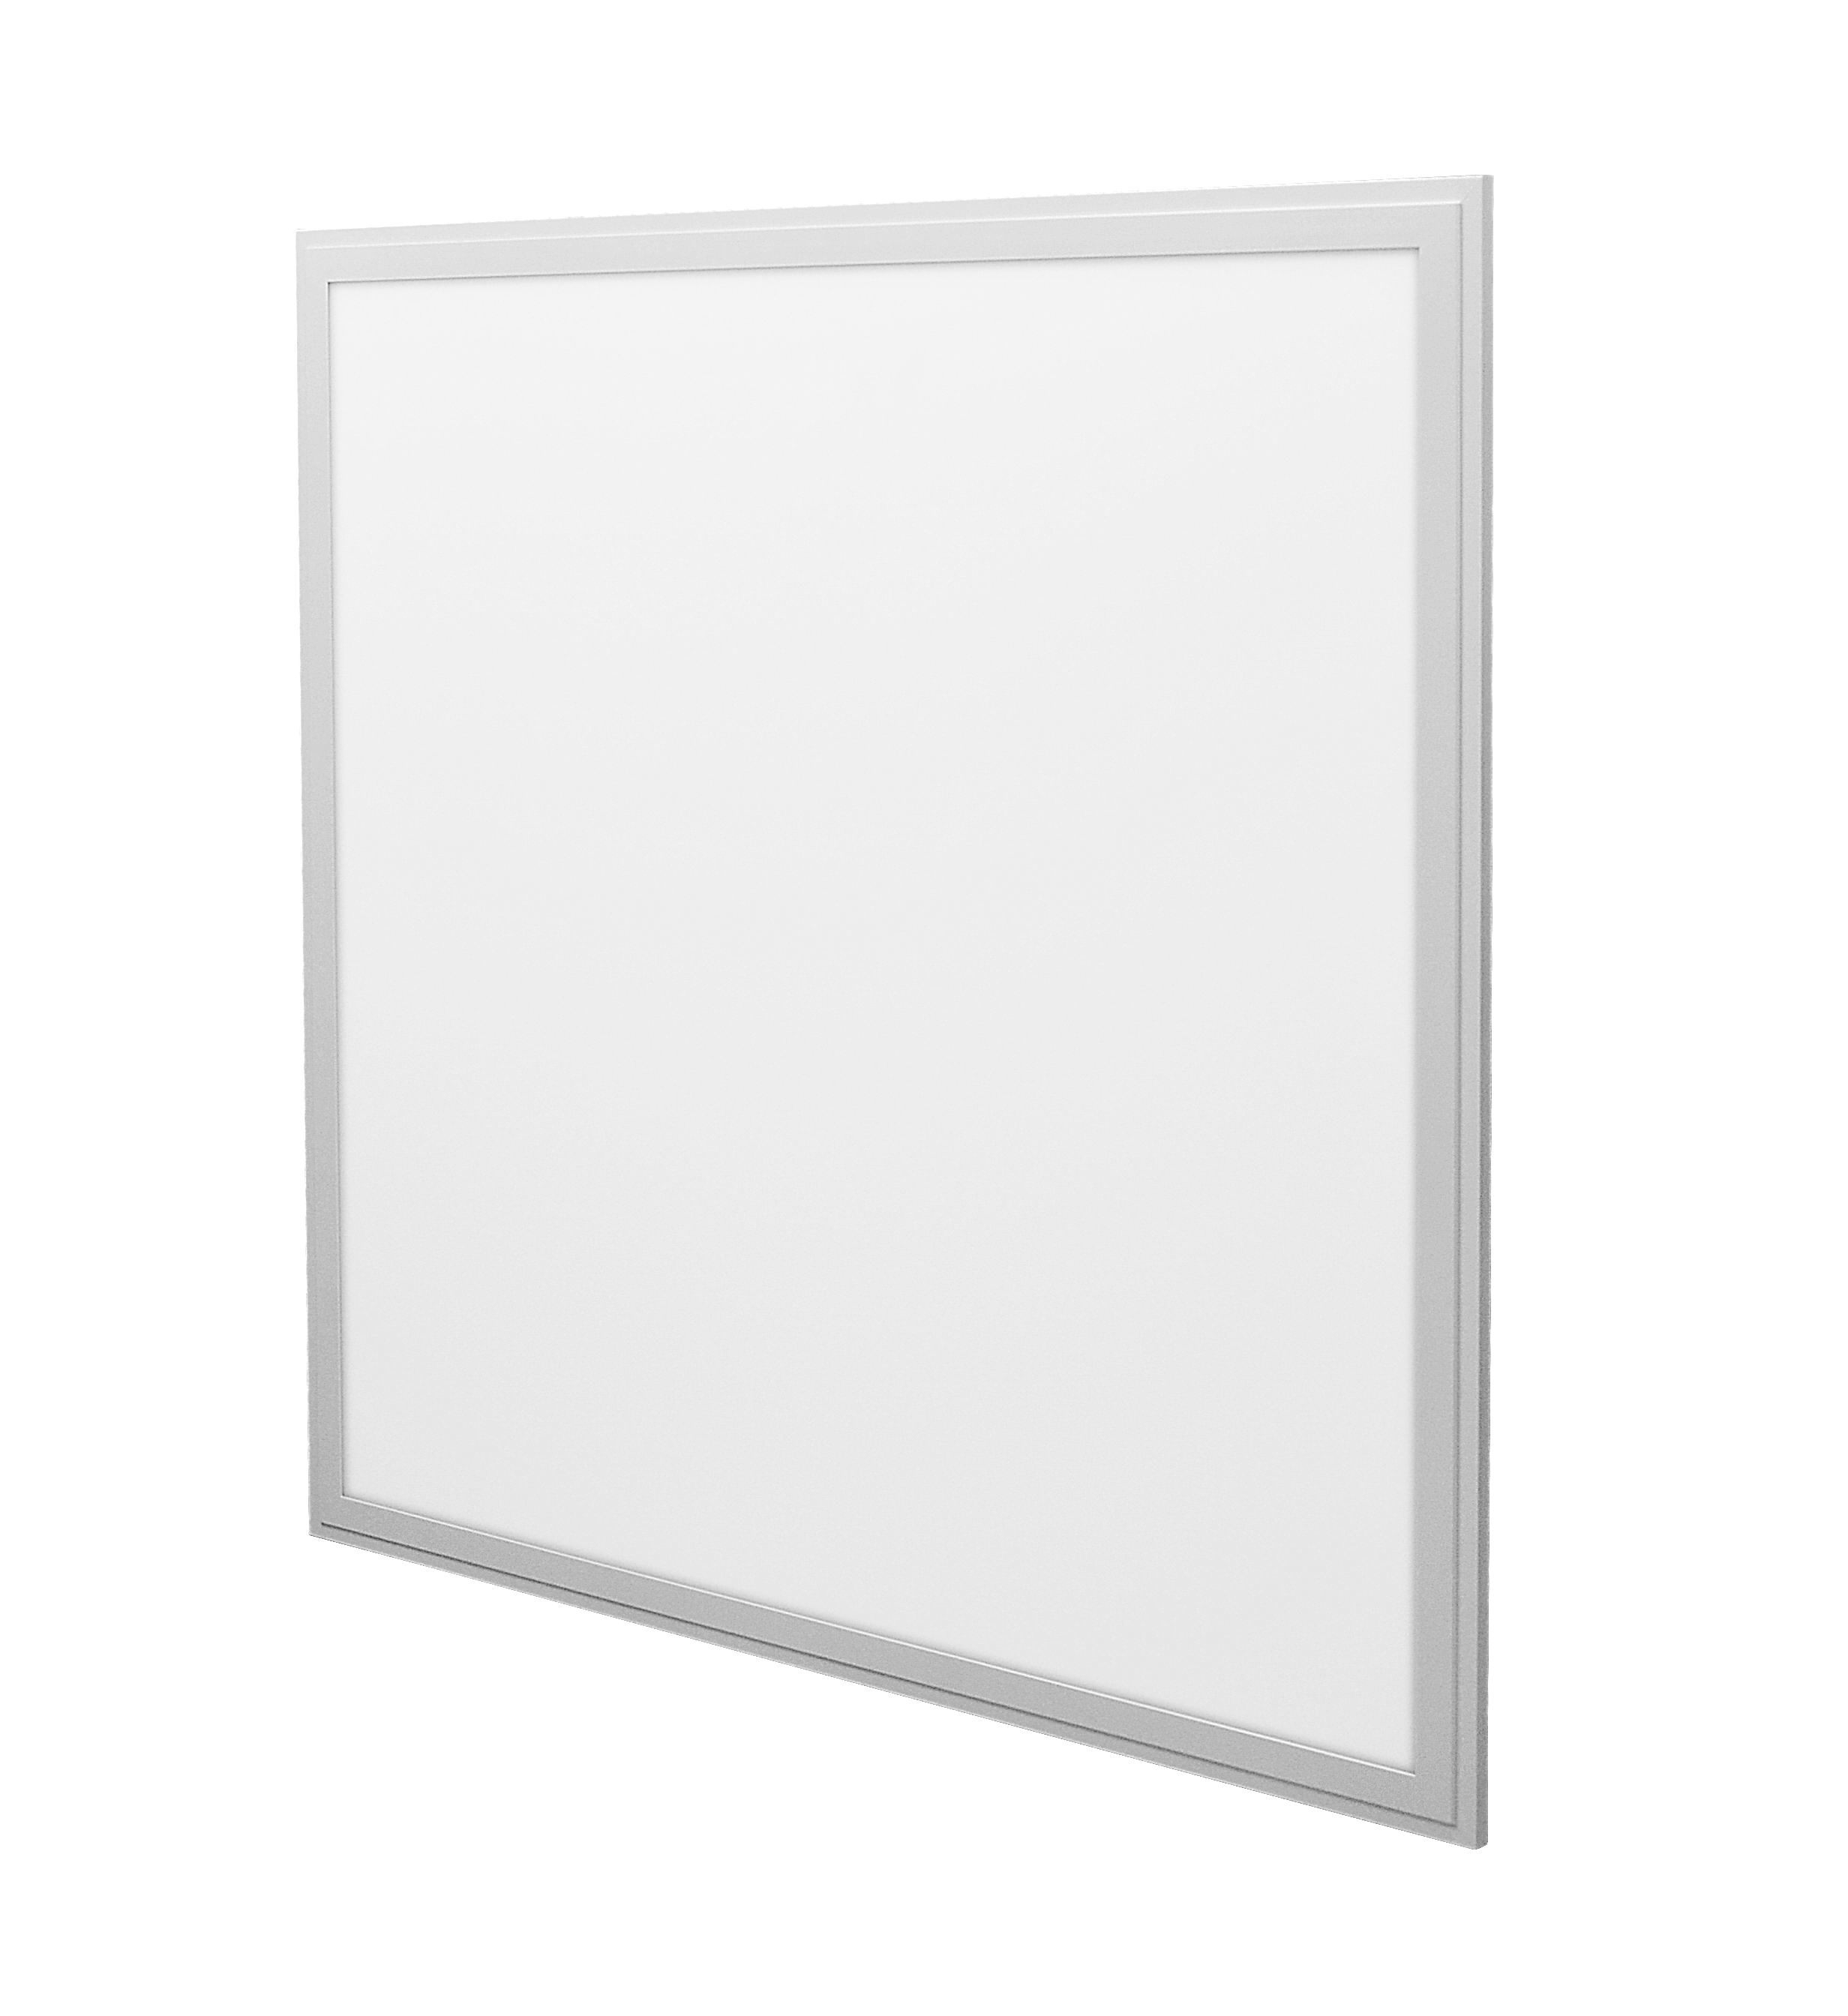 Latest led backlight panel lens suppliers for showrooms-1